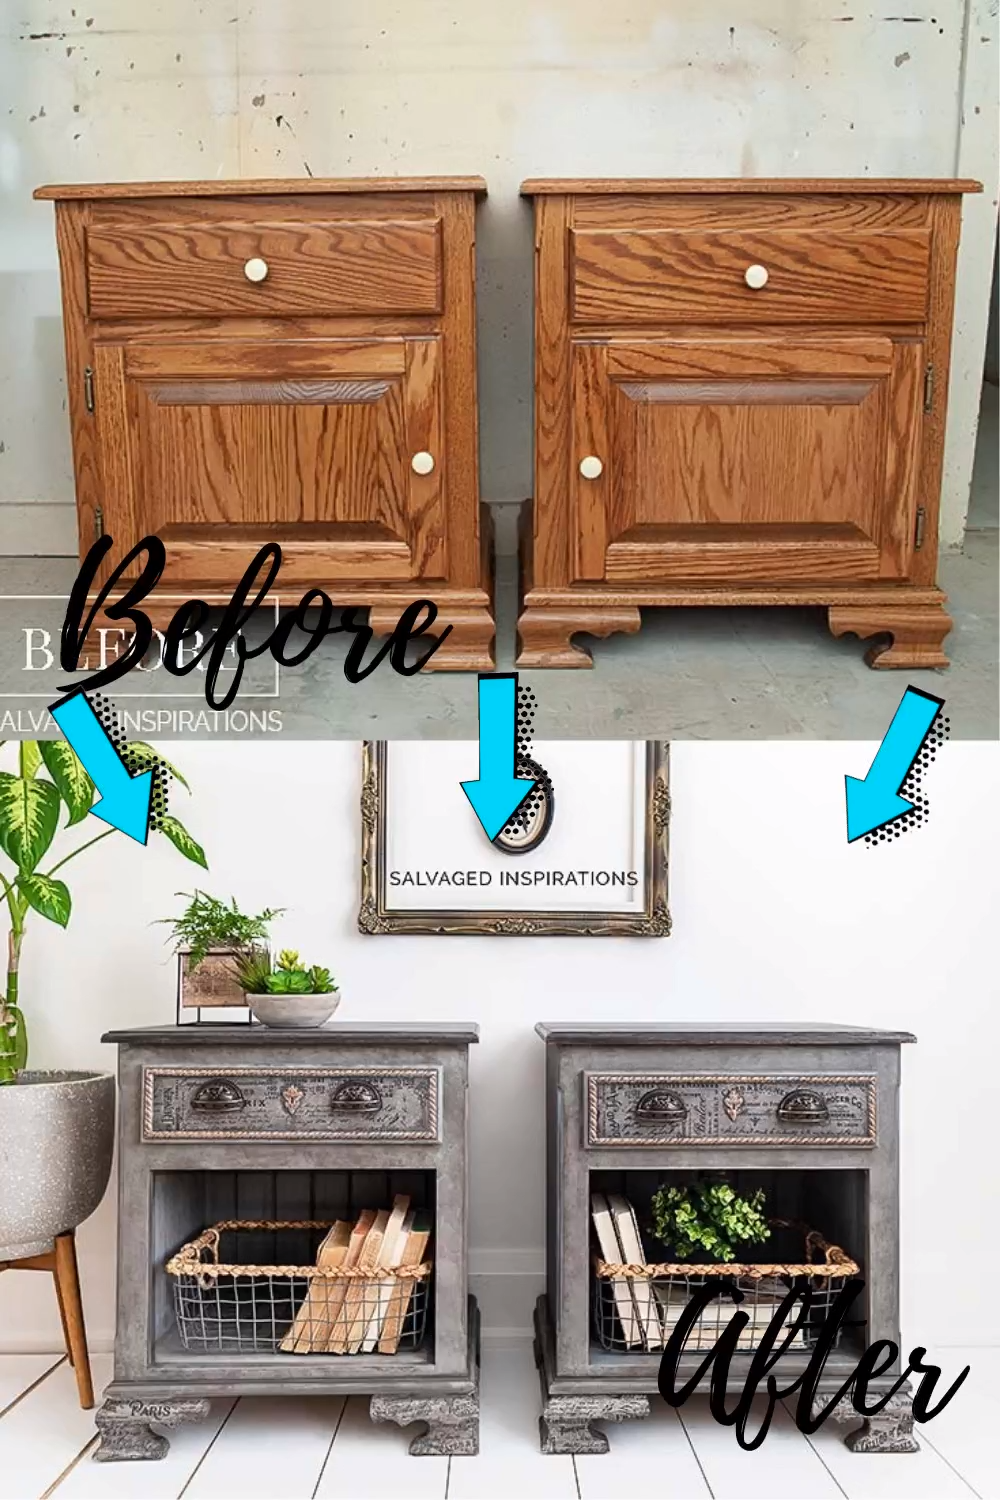 Photo of Before & After Furniture Makeovers | Salvaged Inspirations